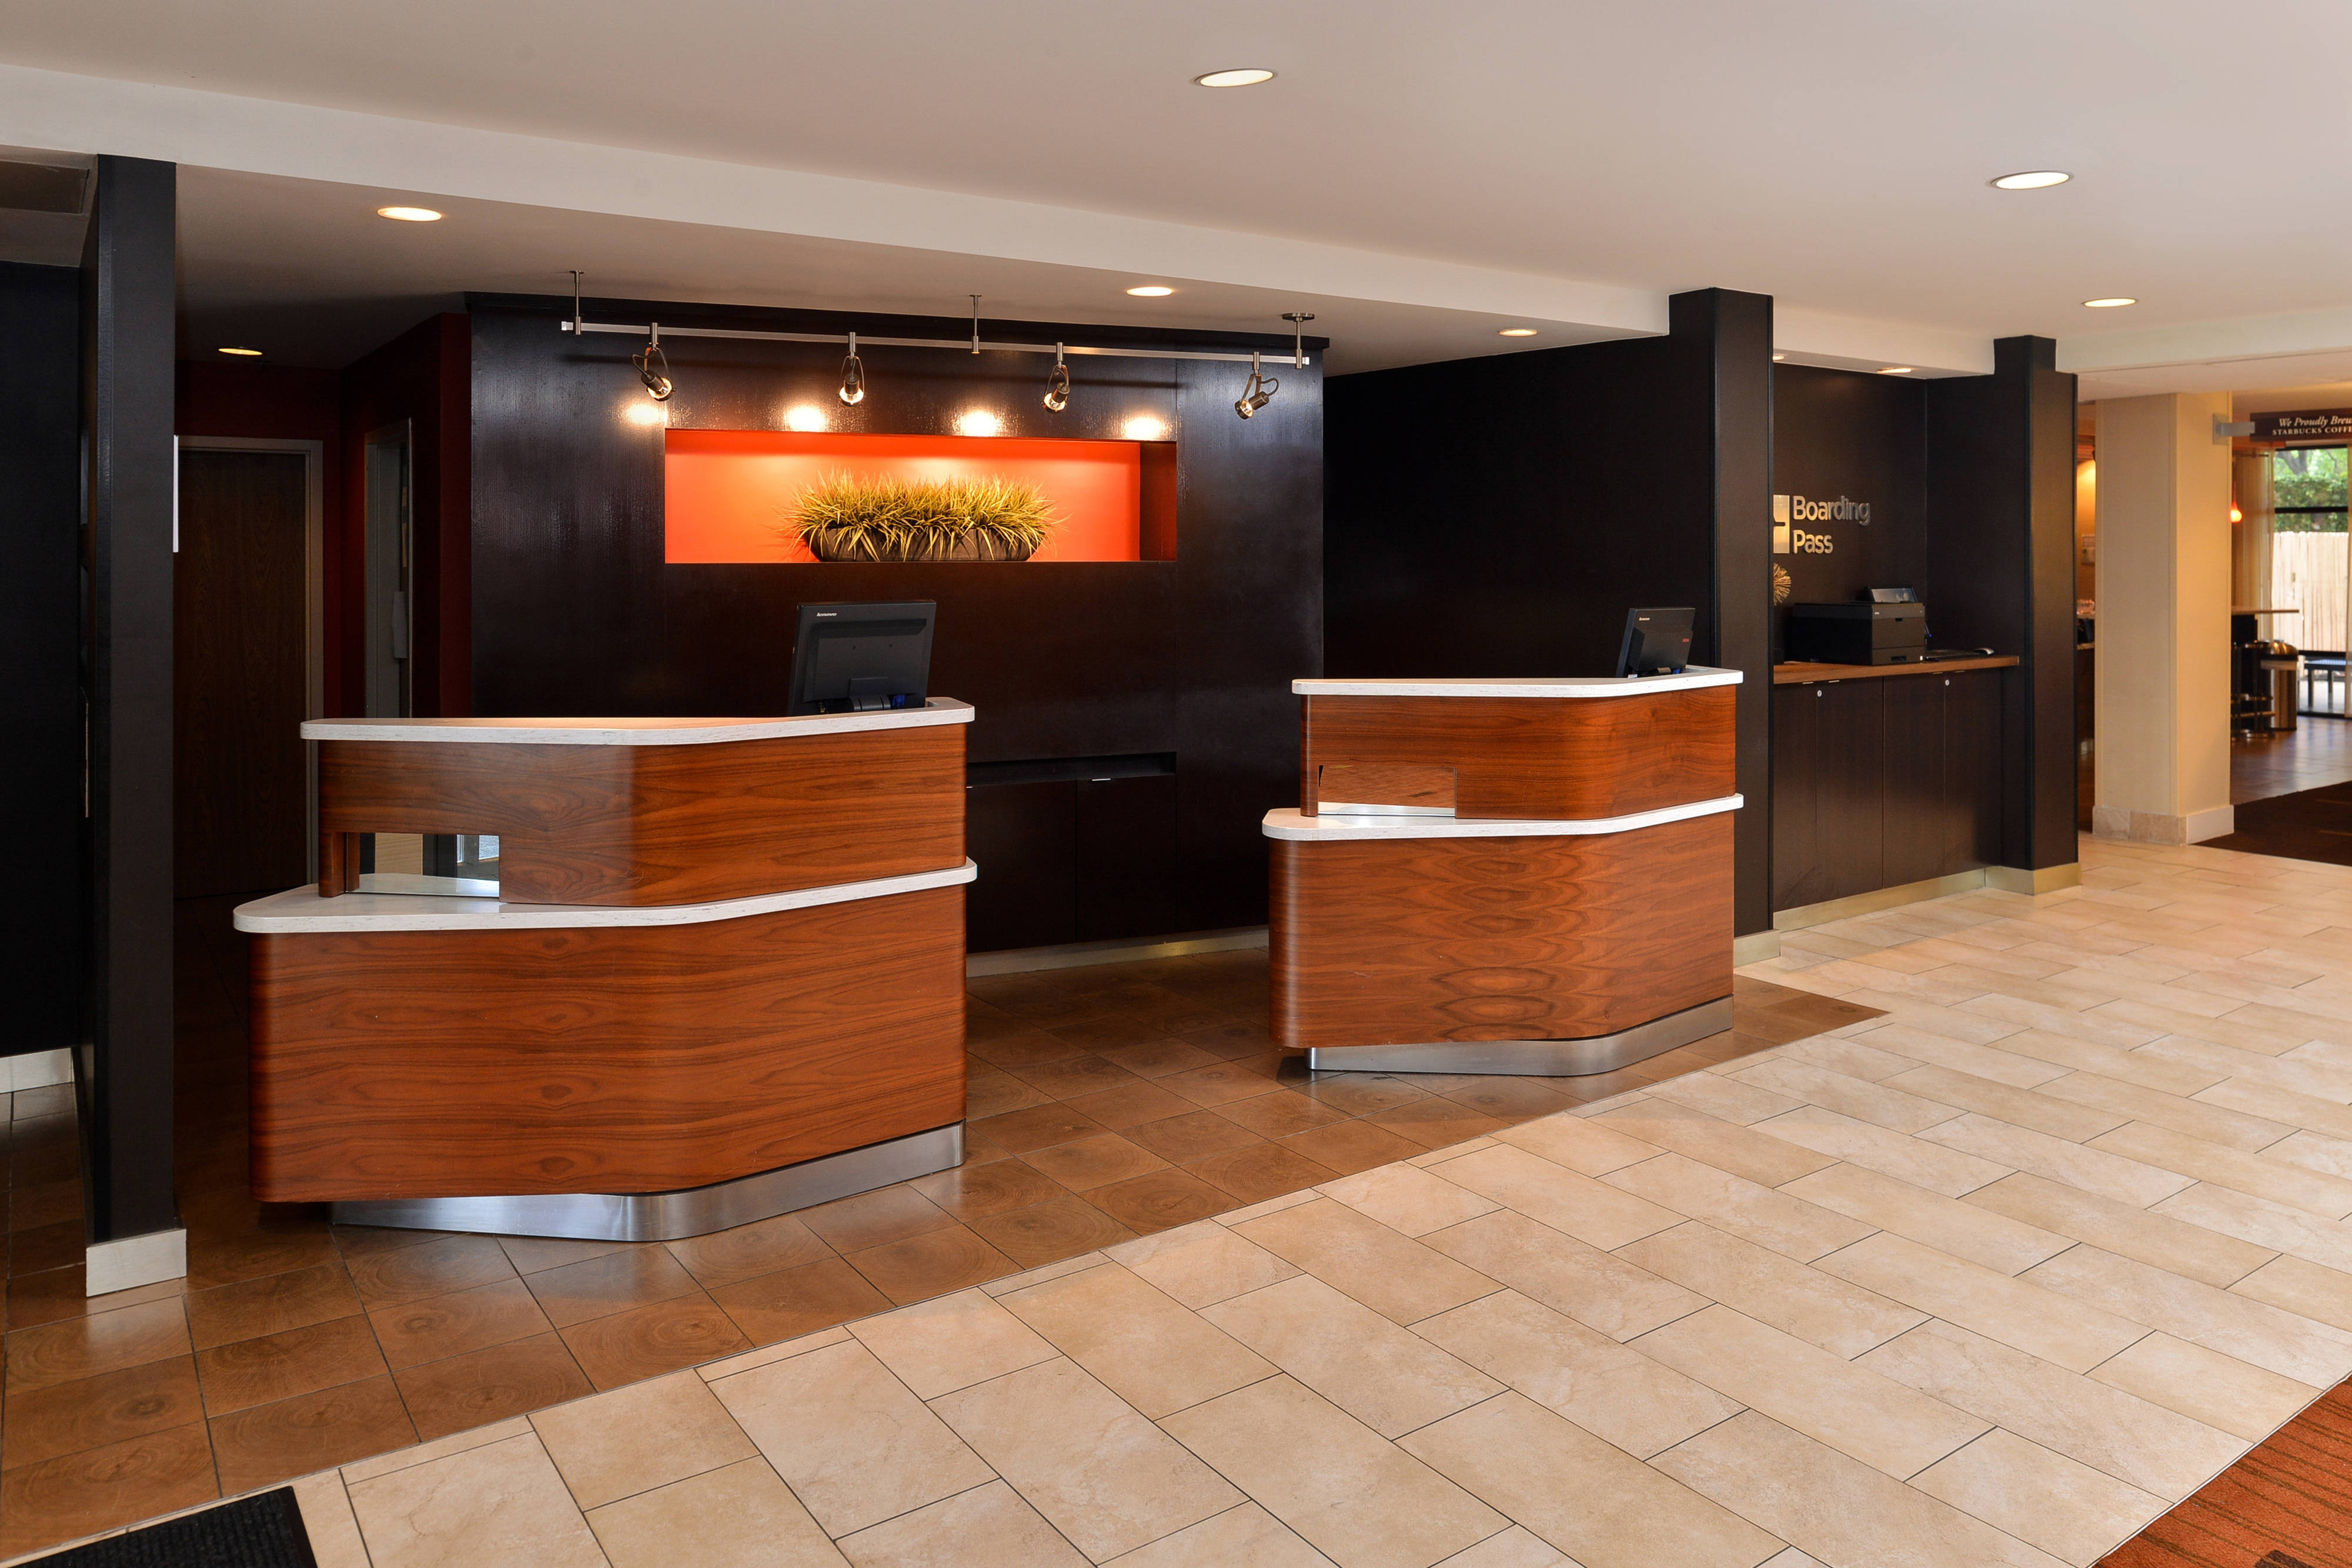 Courtyard by Marriott Laredo Welcome Pedestals